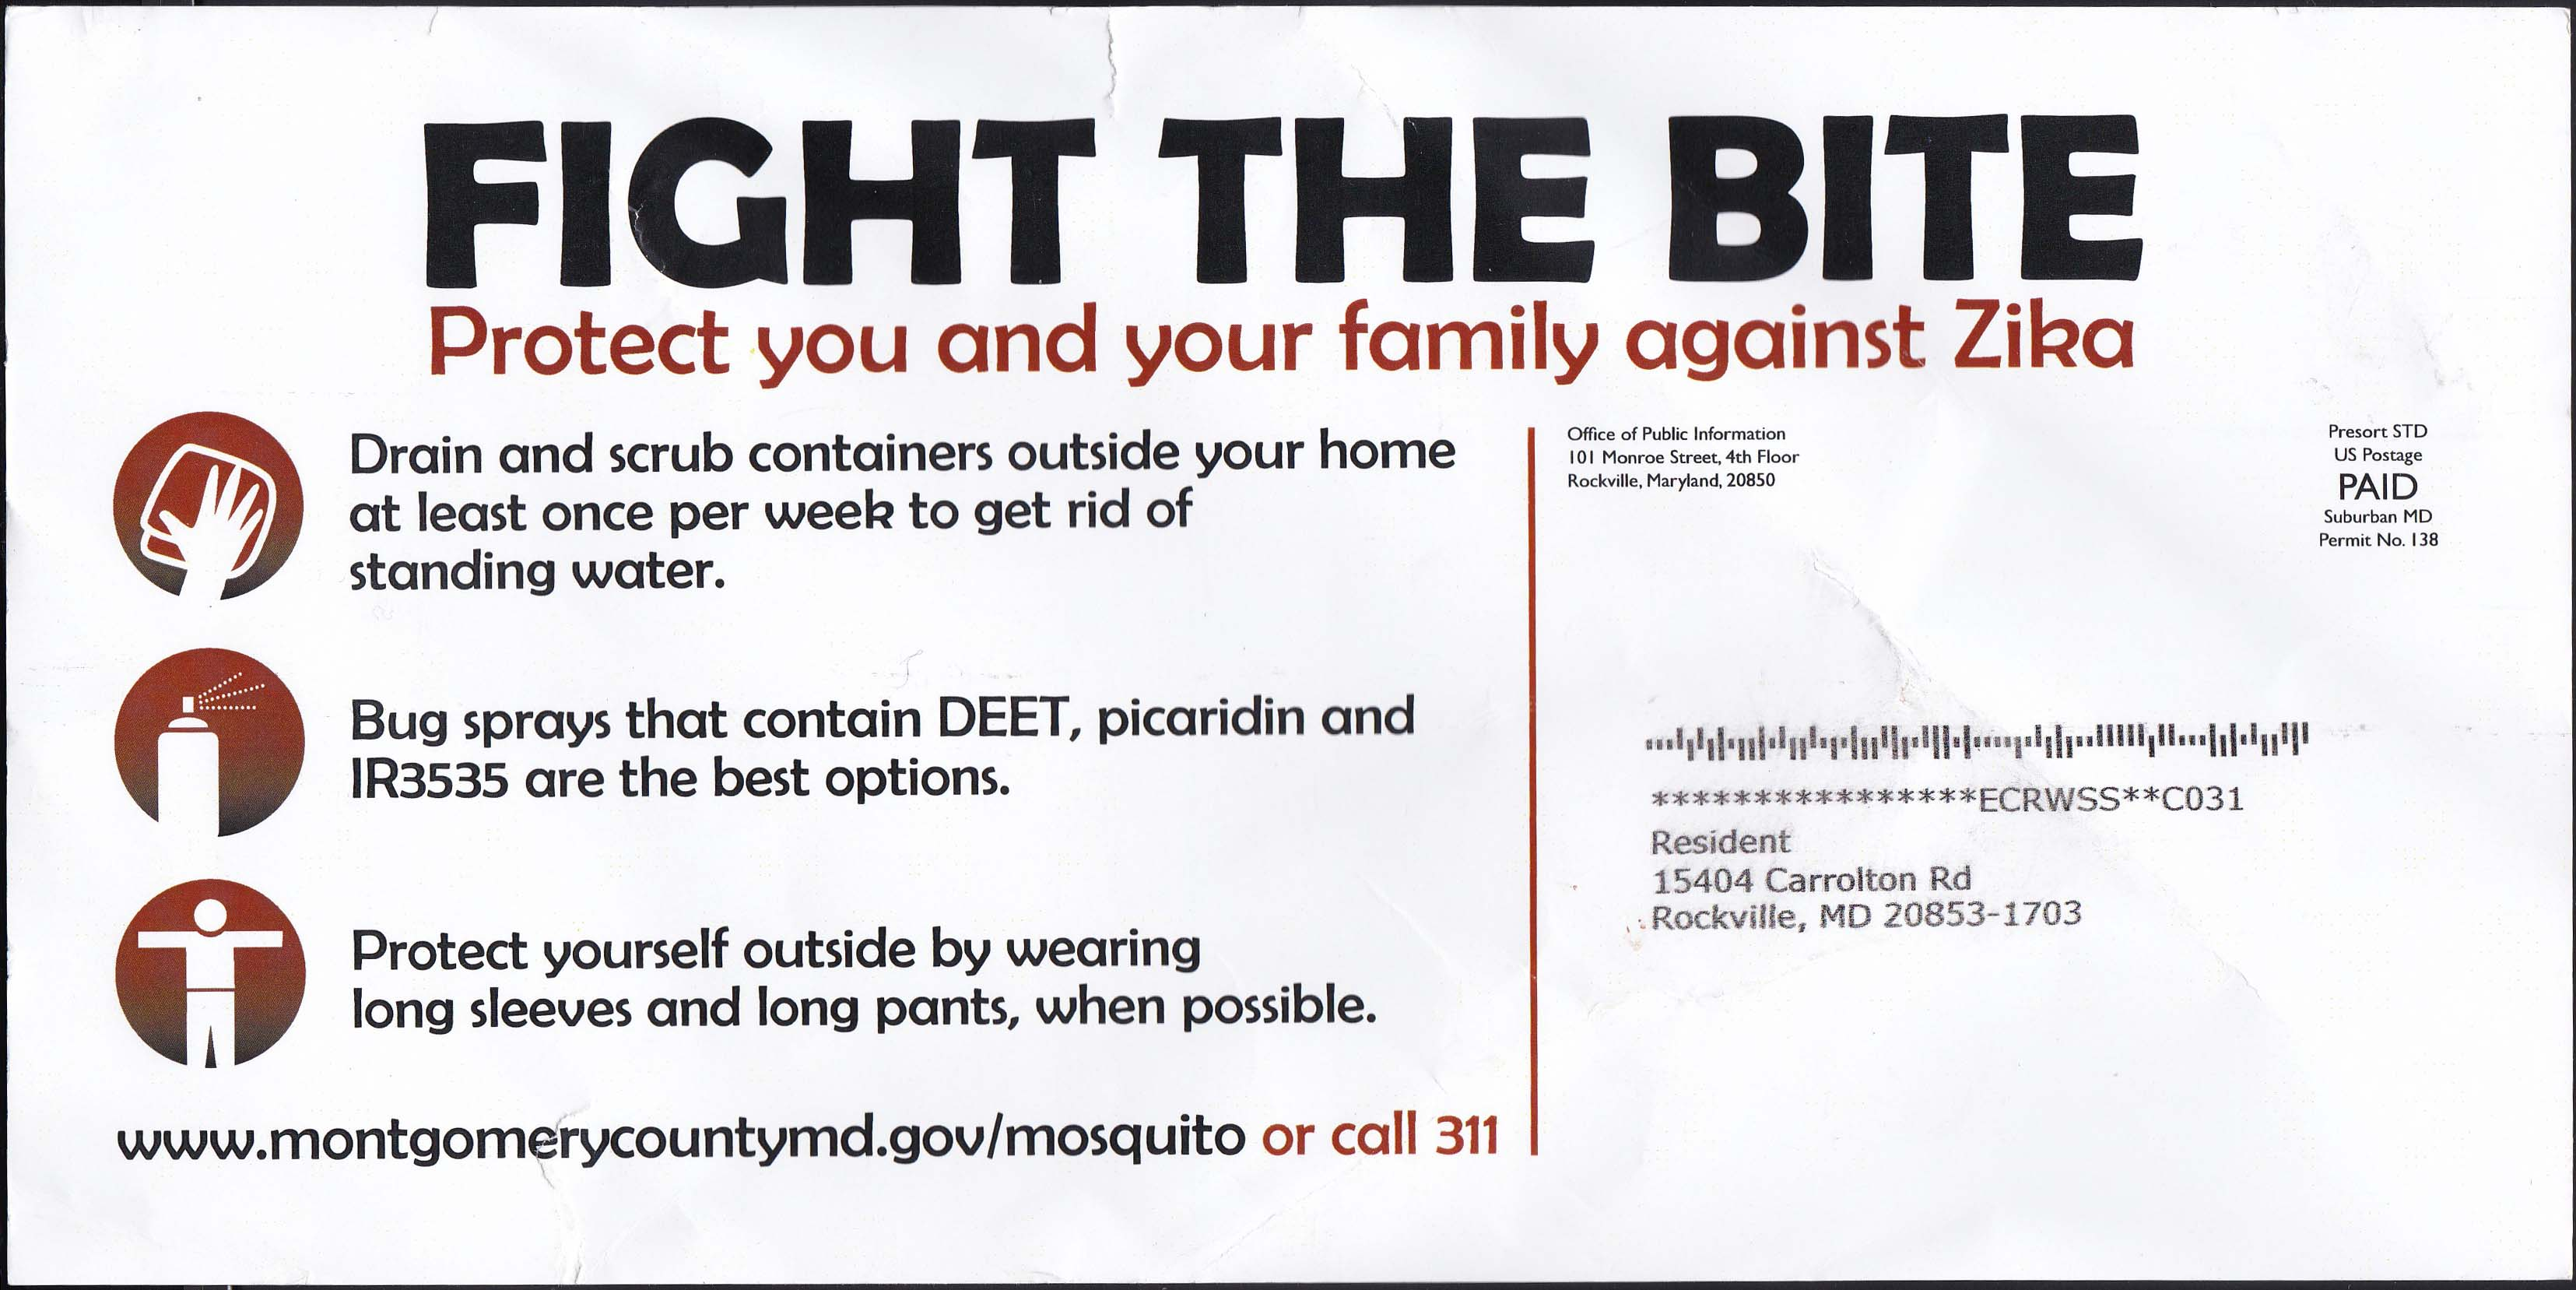 Fight The Bite, Zika Mailing - Side 2